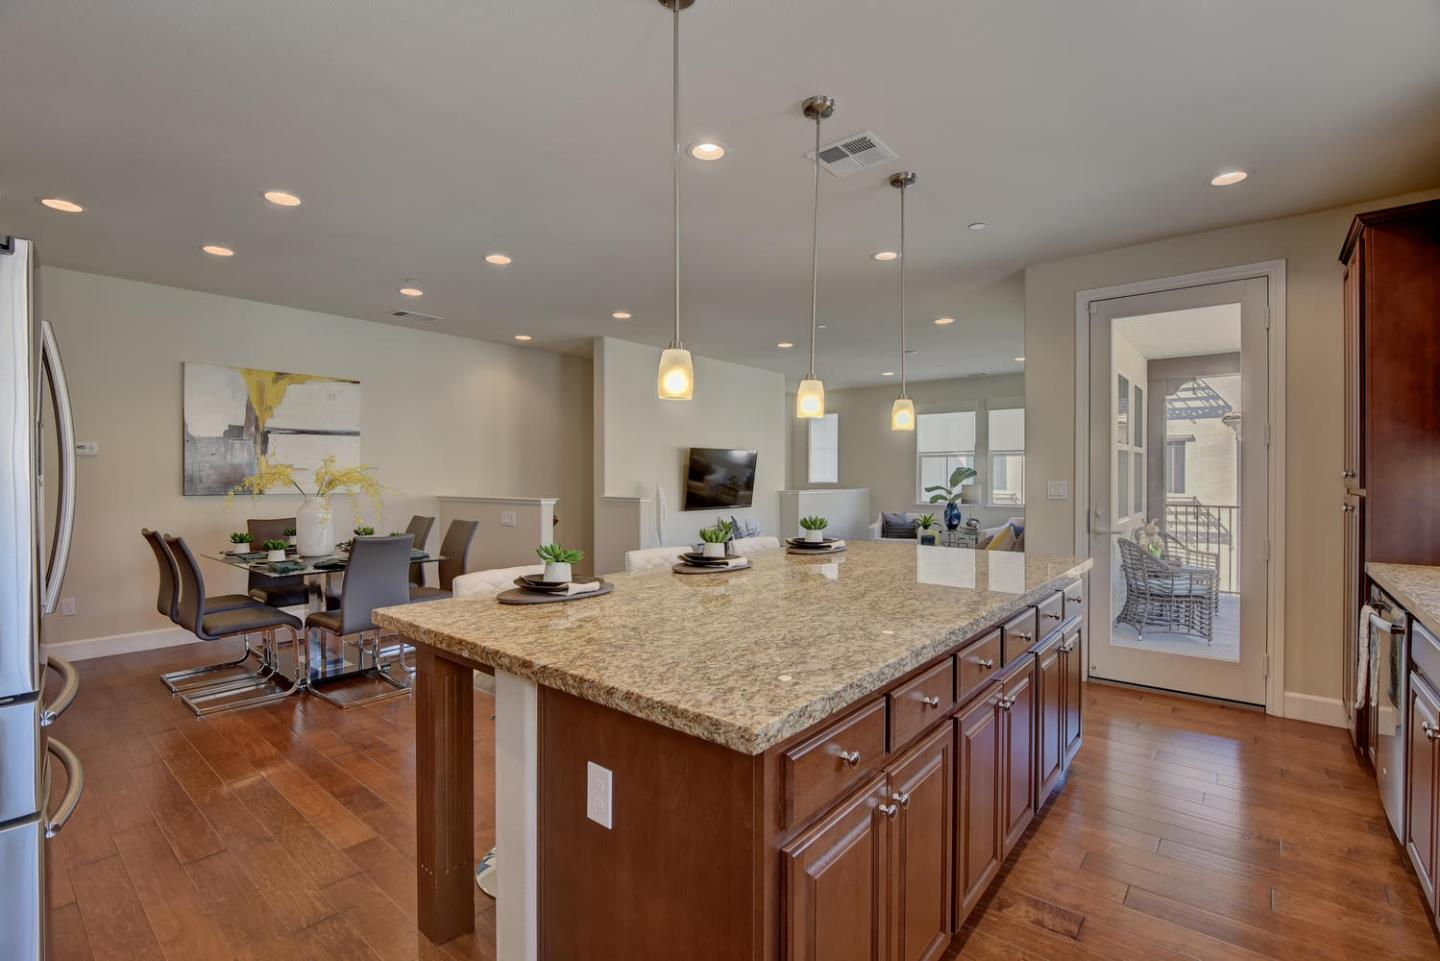 Additional photo for property listing at 548 Crown Point Ter  SUNNYVALE, CALIFORNIA 94087